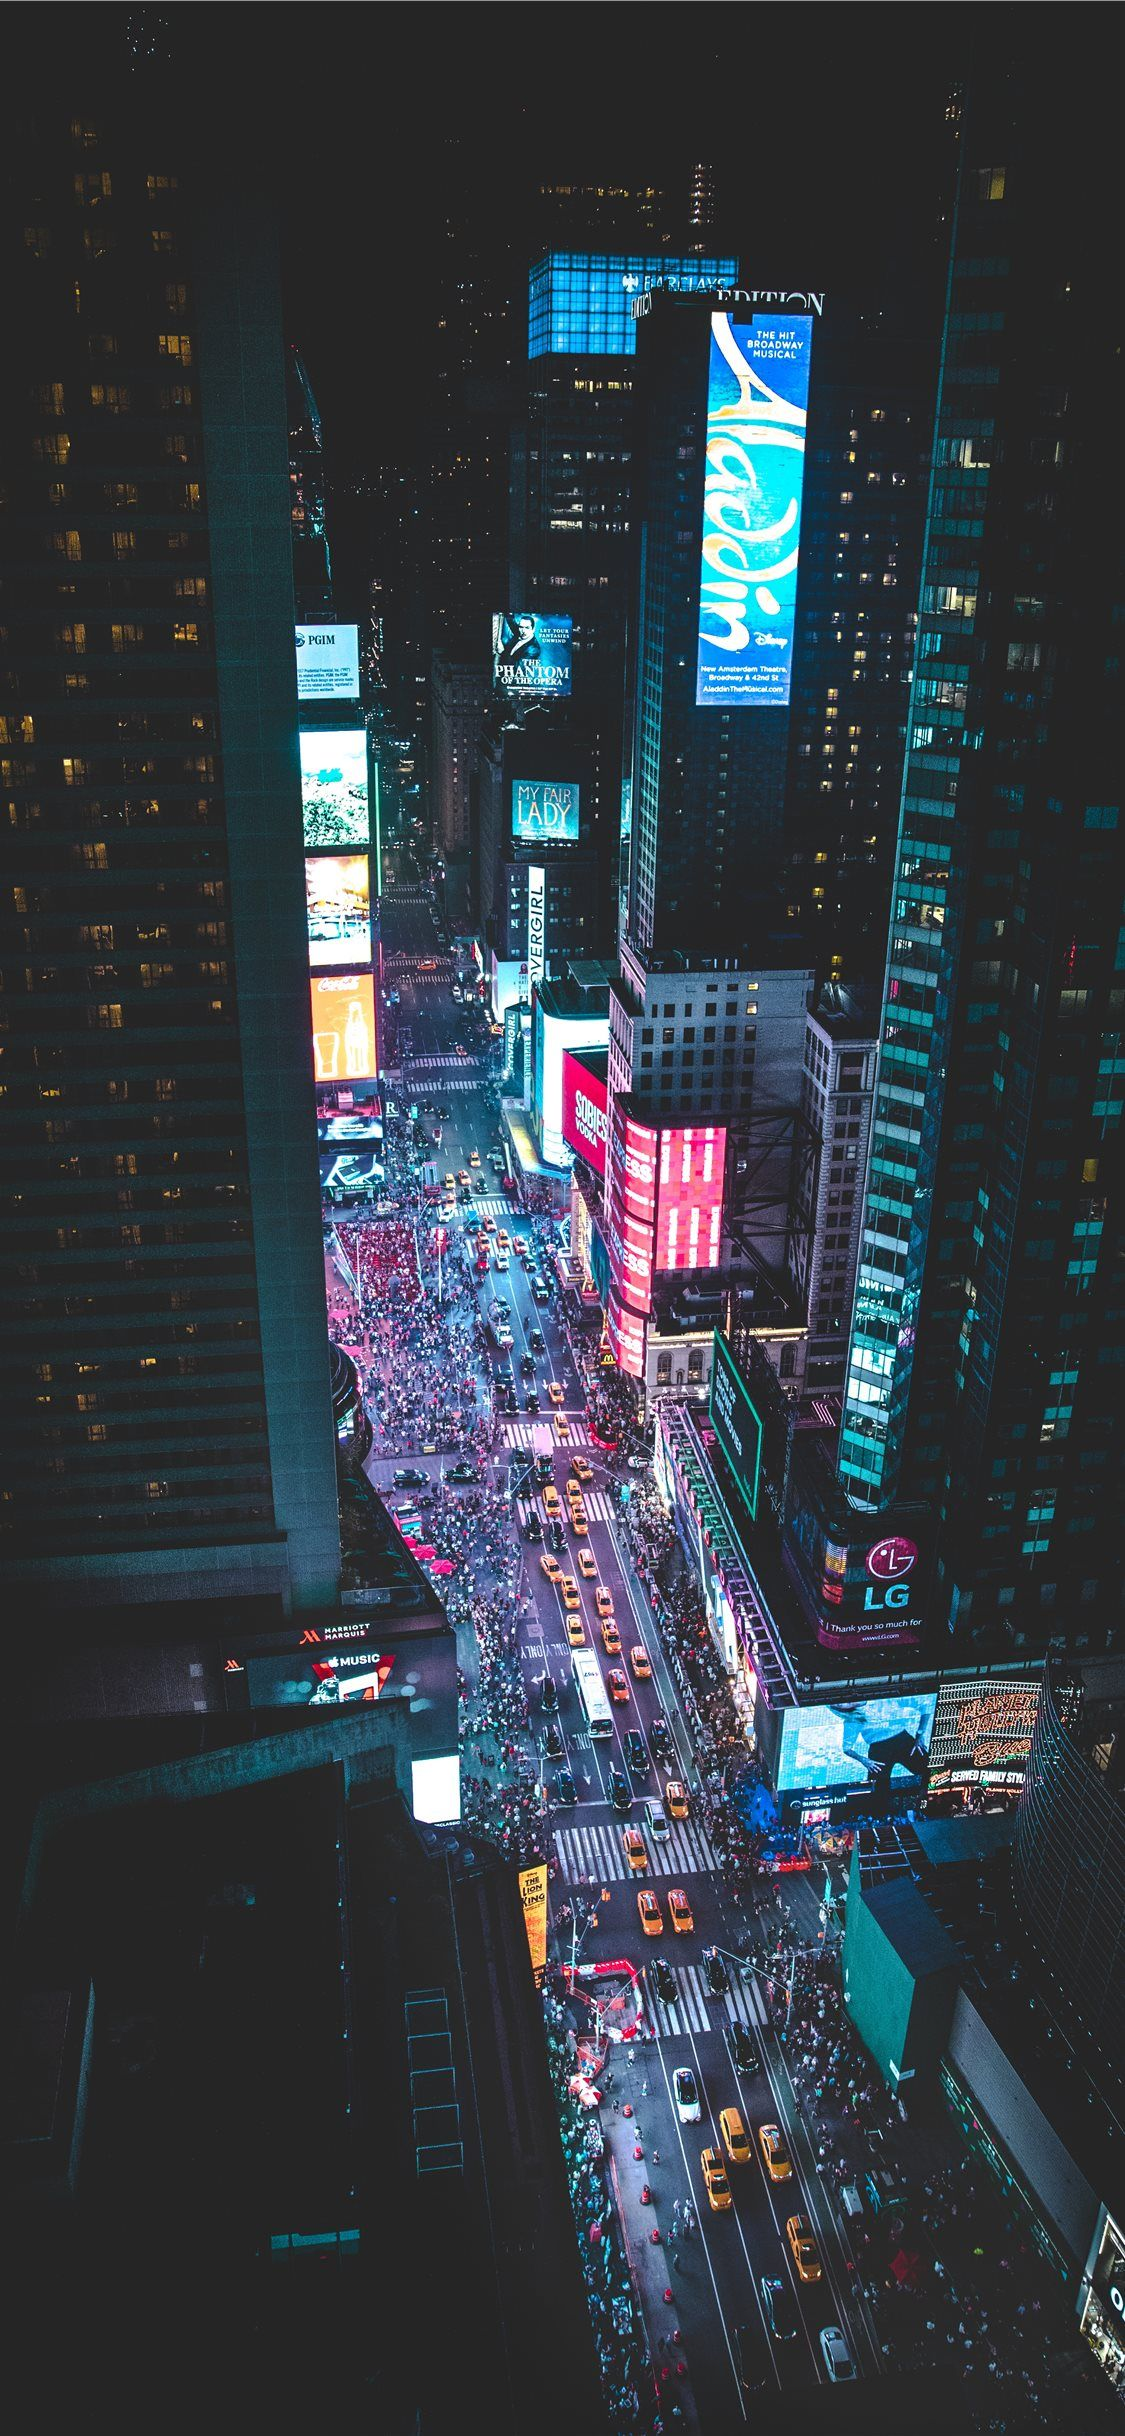 Aerial Photo Of A Busy City During Night Time City Wallpaper City Aesthetic Cyberpunk City